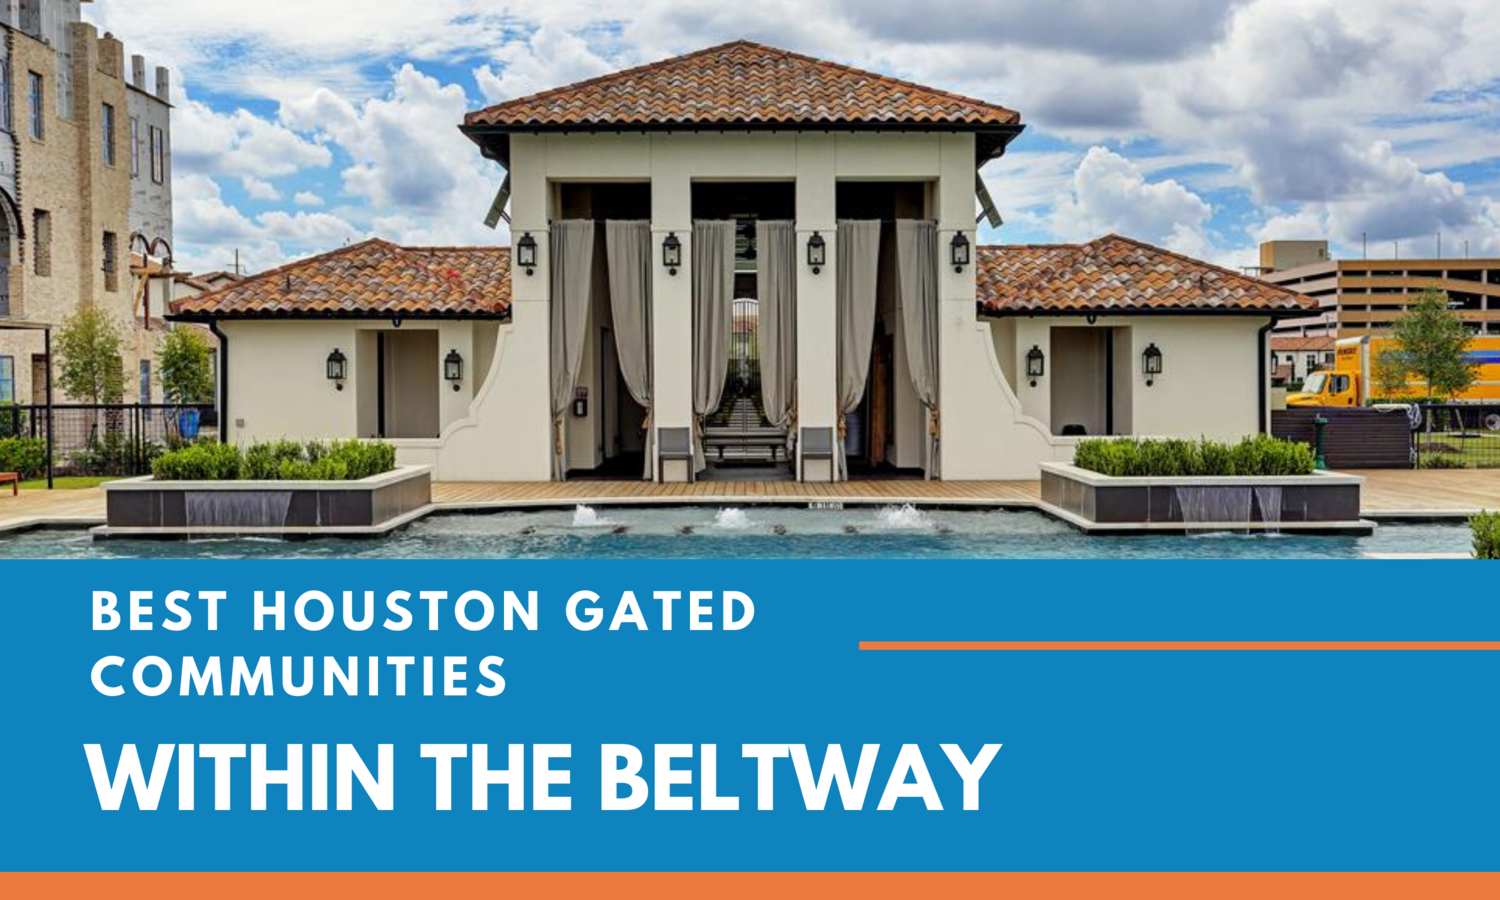 See the Best Houston Gated Communities Within the Beltway